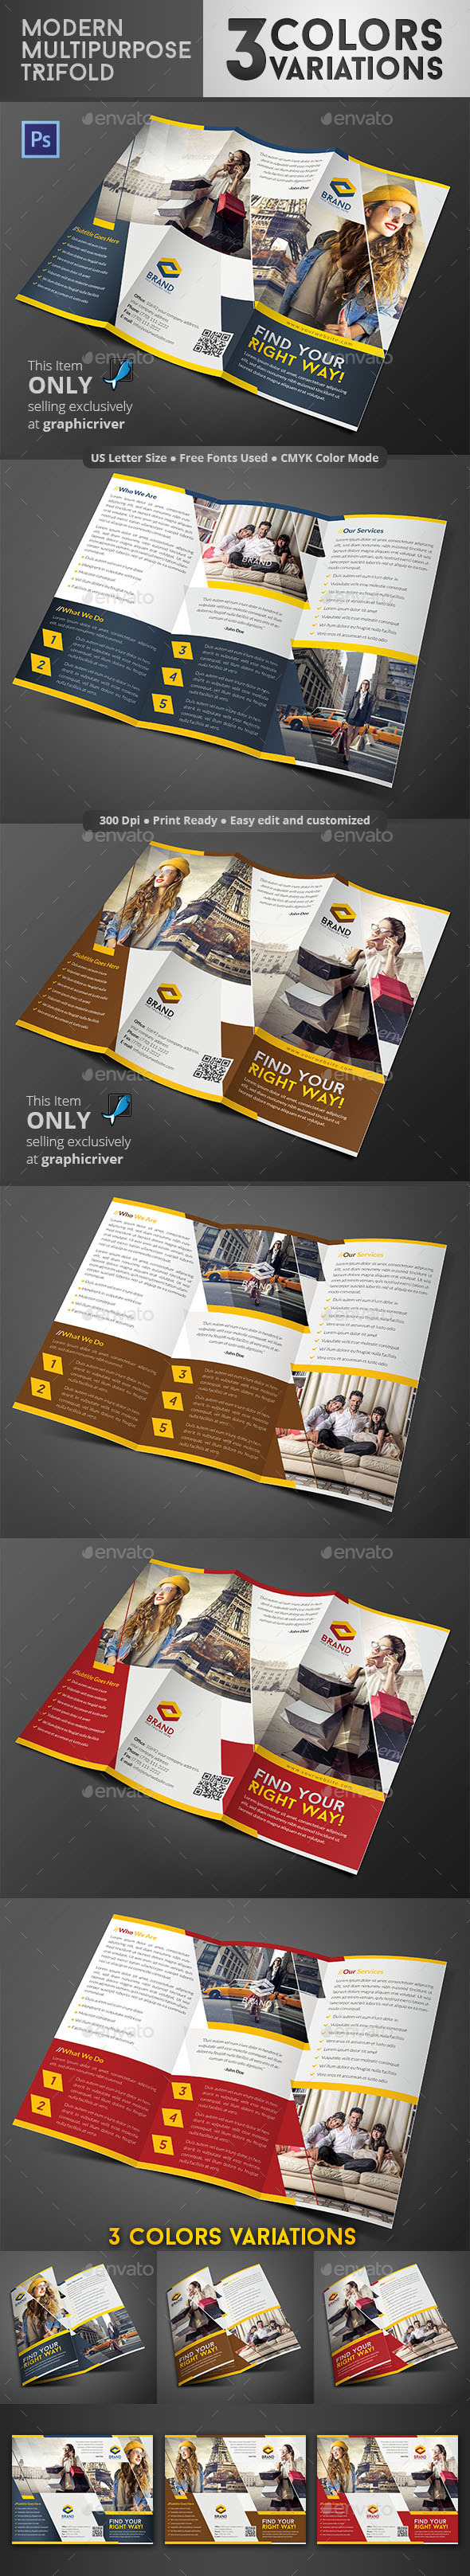 GraphicRiver Modern Multipurpose Trifold 3 Colour Variations 8792702